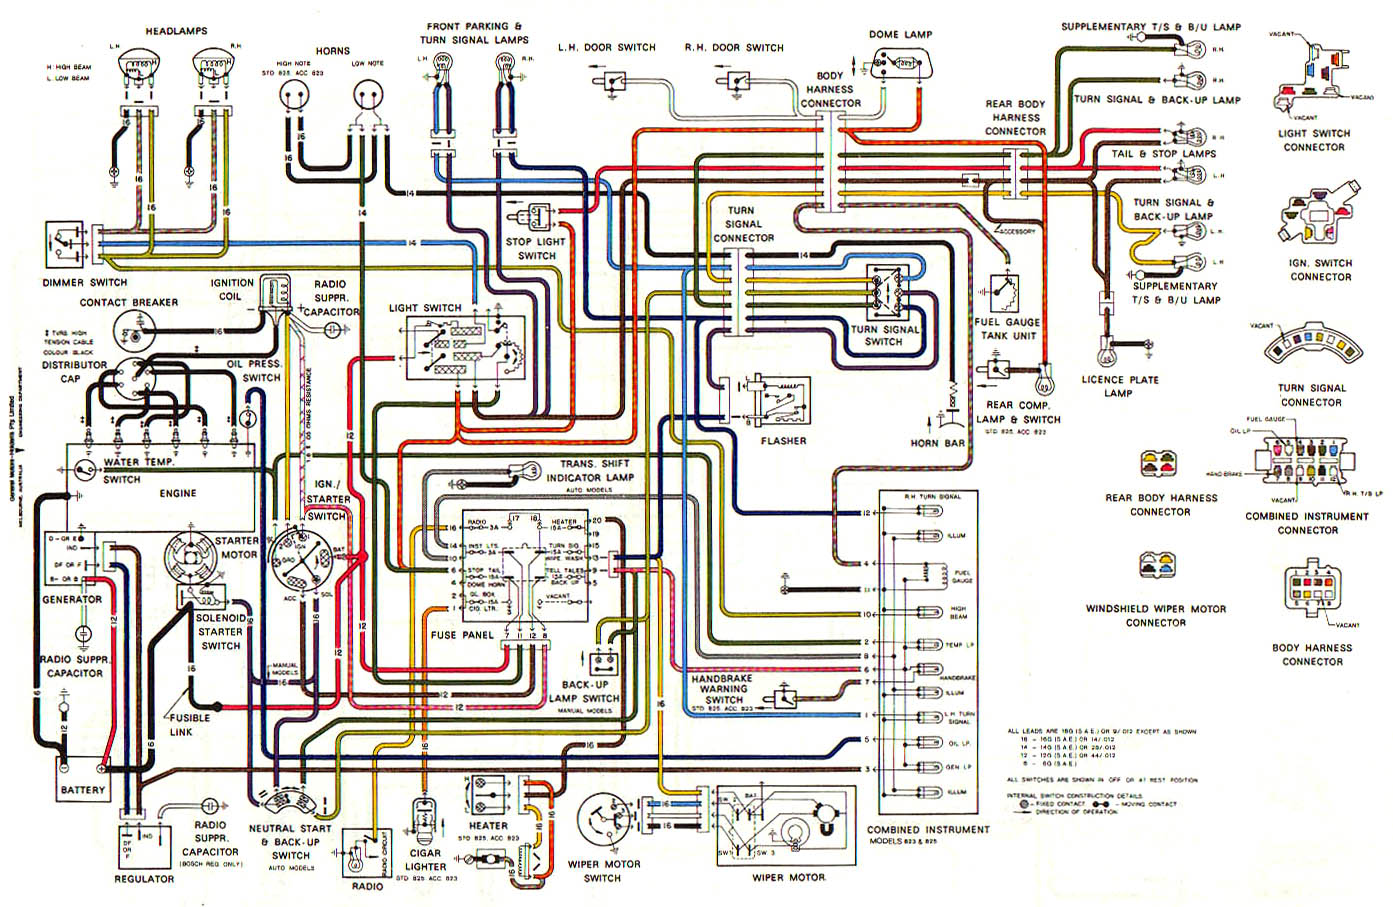 Vt Stereo Wiring Diagram Auto Electrical 1986 Ford F 250 Sel Vy 24 Images